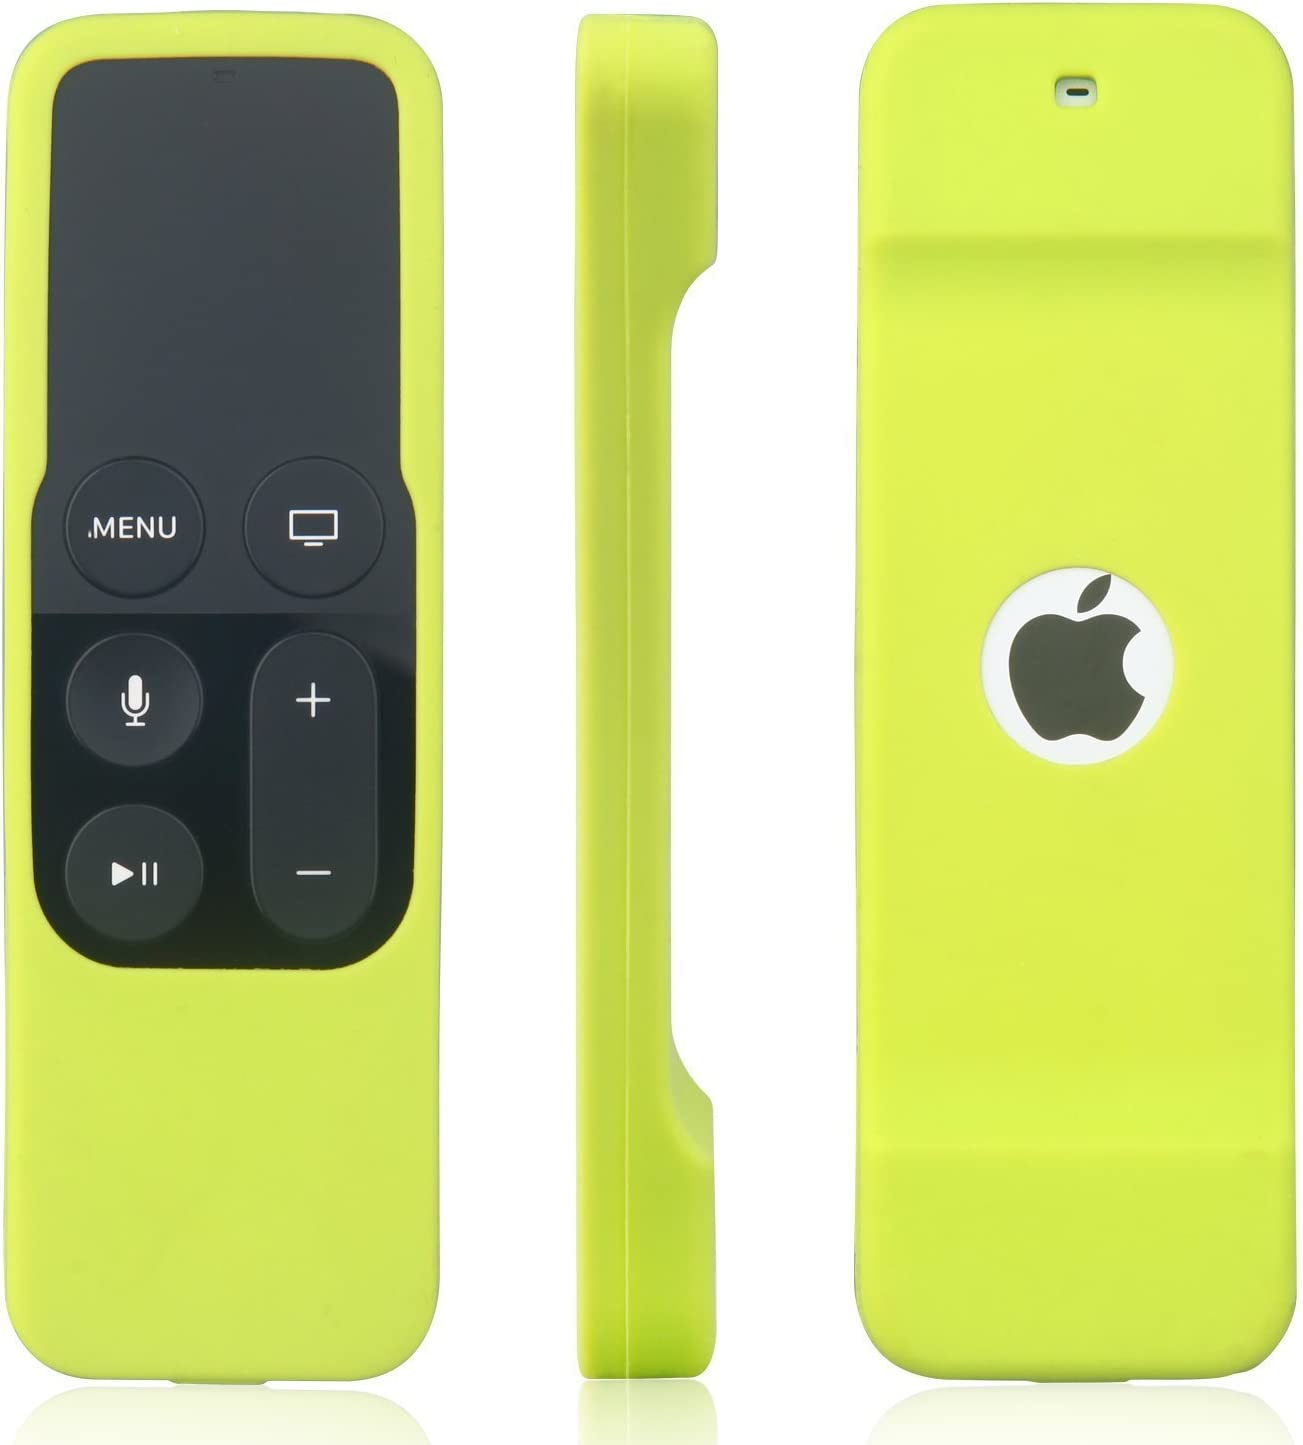 Remote Case Compatible with Apple TV 4K 5th / 4th Gen Remote, SYMOTOP Anti Slip Shock Proof Silicone Remote Cover Case Compatible with Apple TV 4K 4th 5th Generation Siri Remote Controller - Green